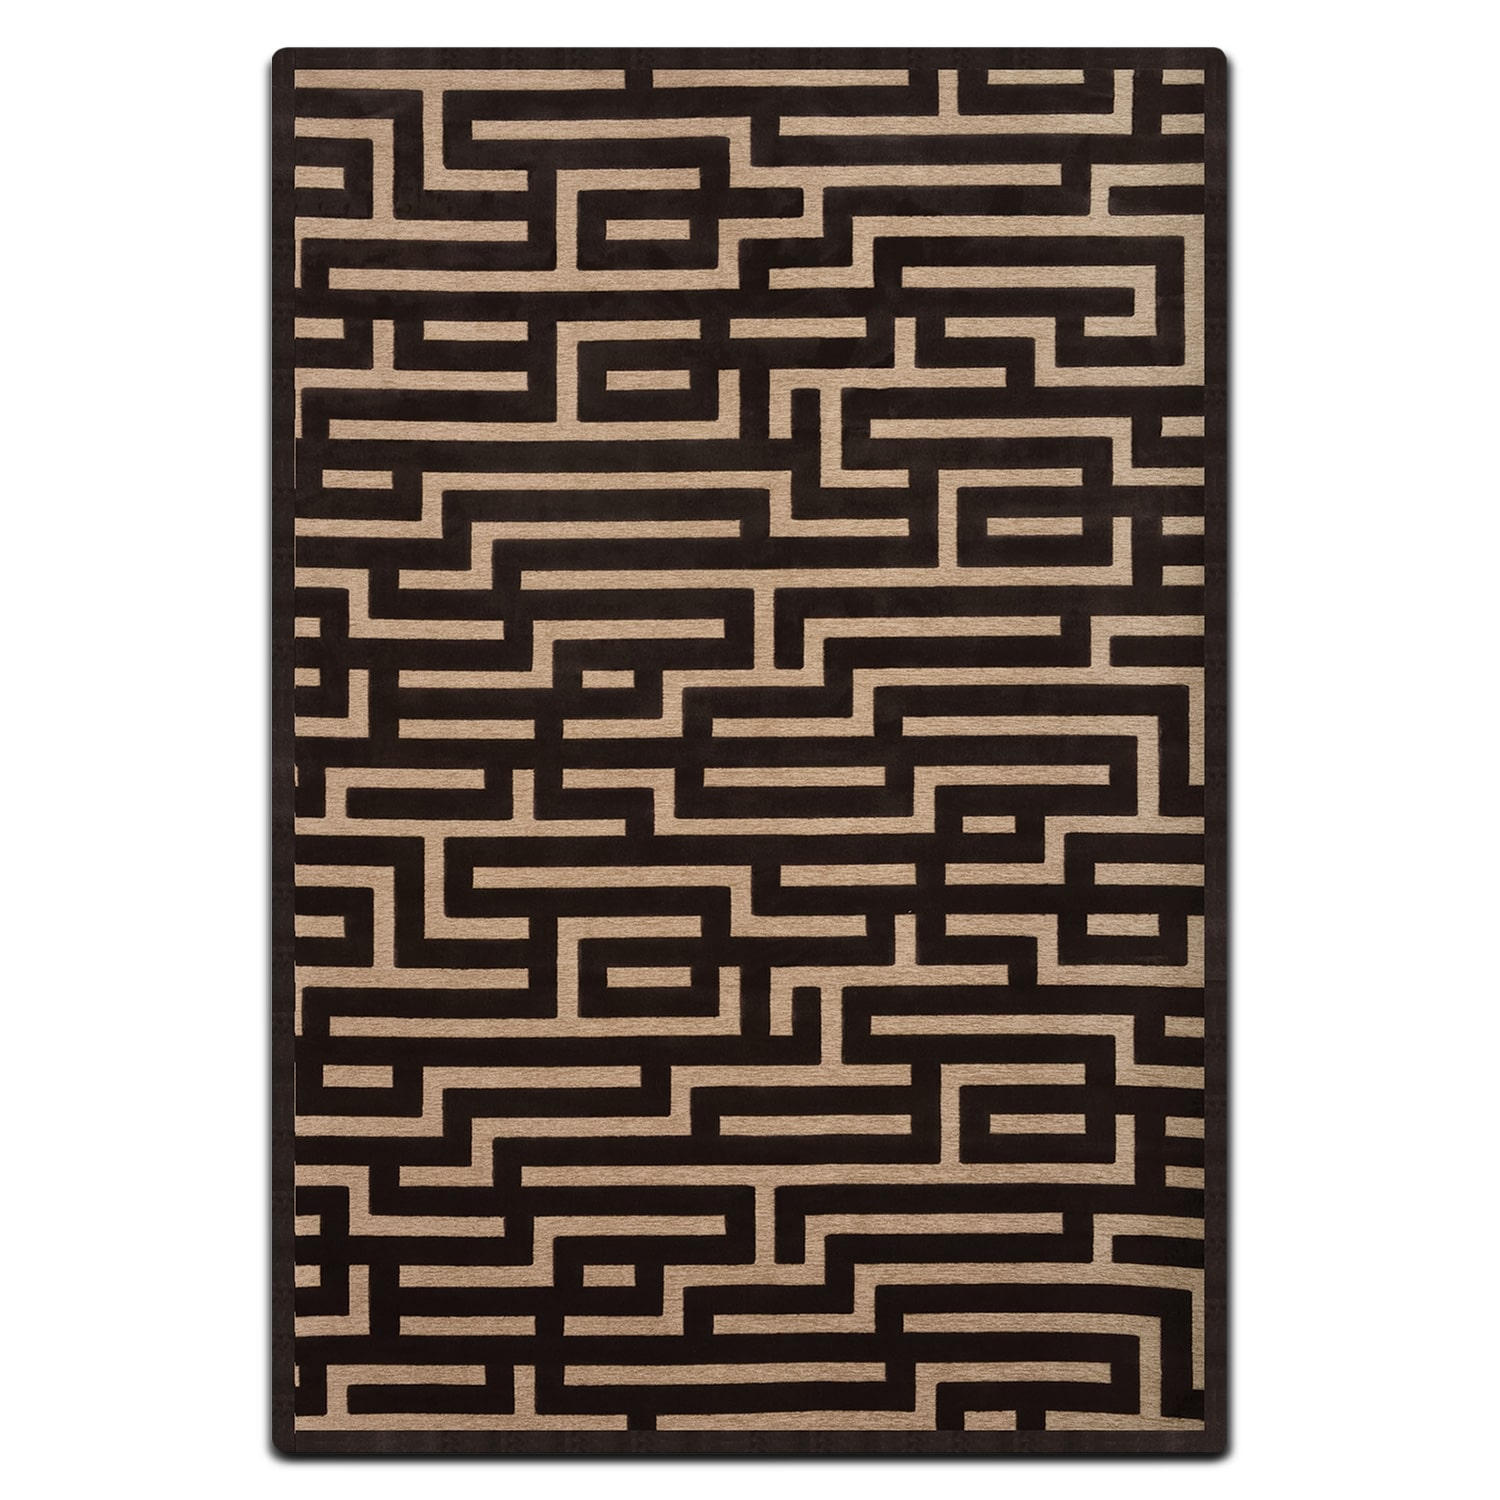 Rugs - Napa 8' x 10' Area Rug - Charcoal and Beige